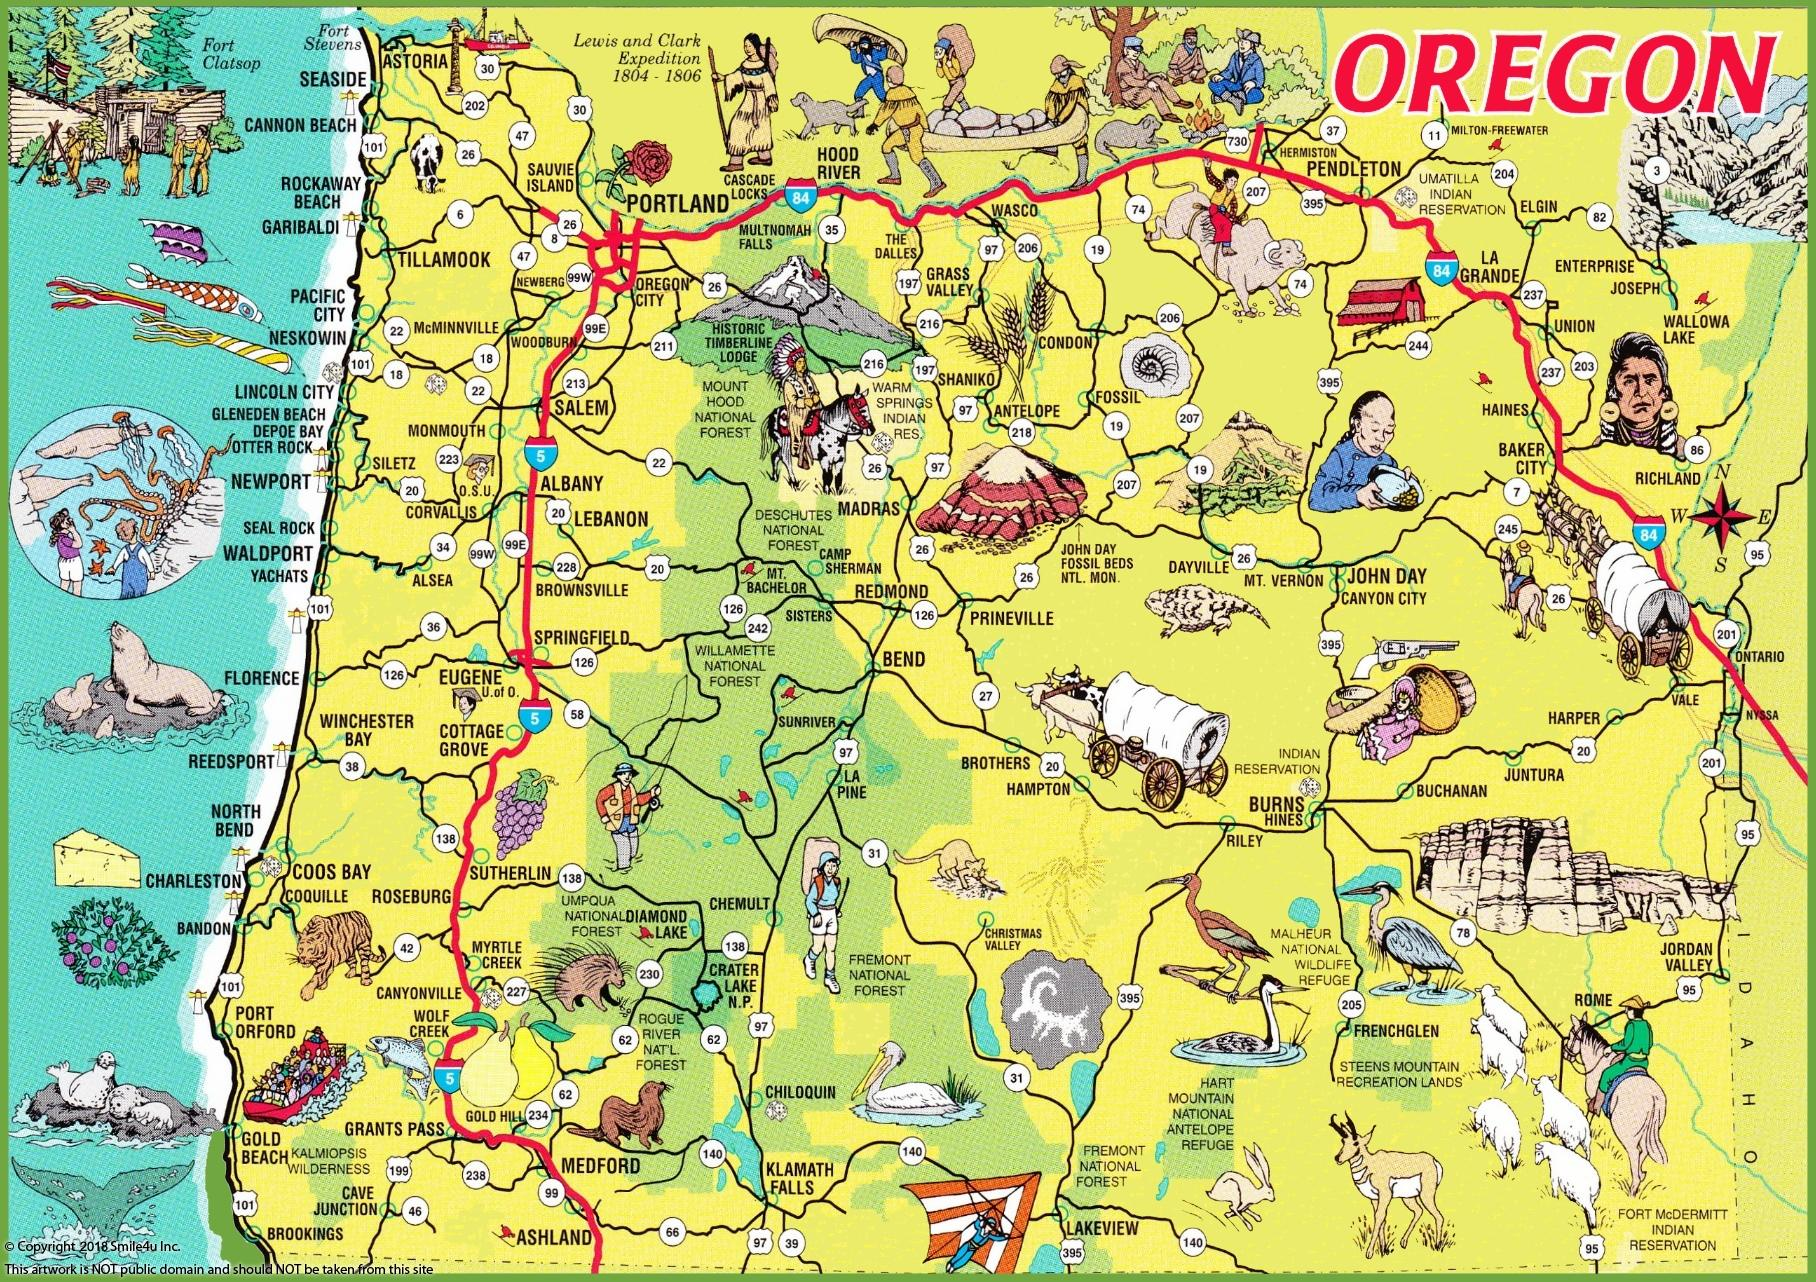 648350_watermarked_pictorial-travel-map-of-oregon.jpg